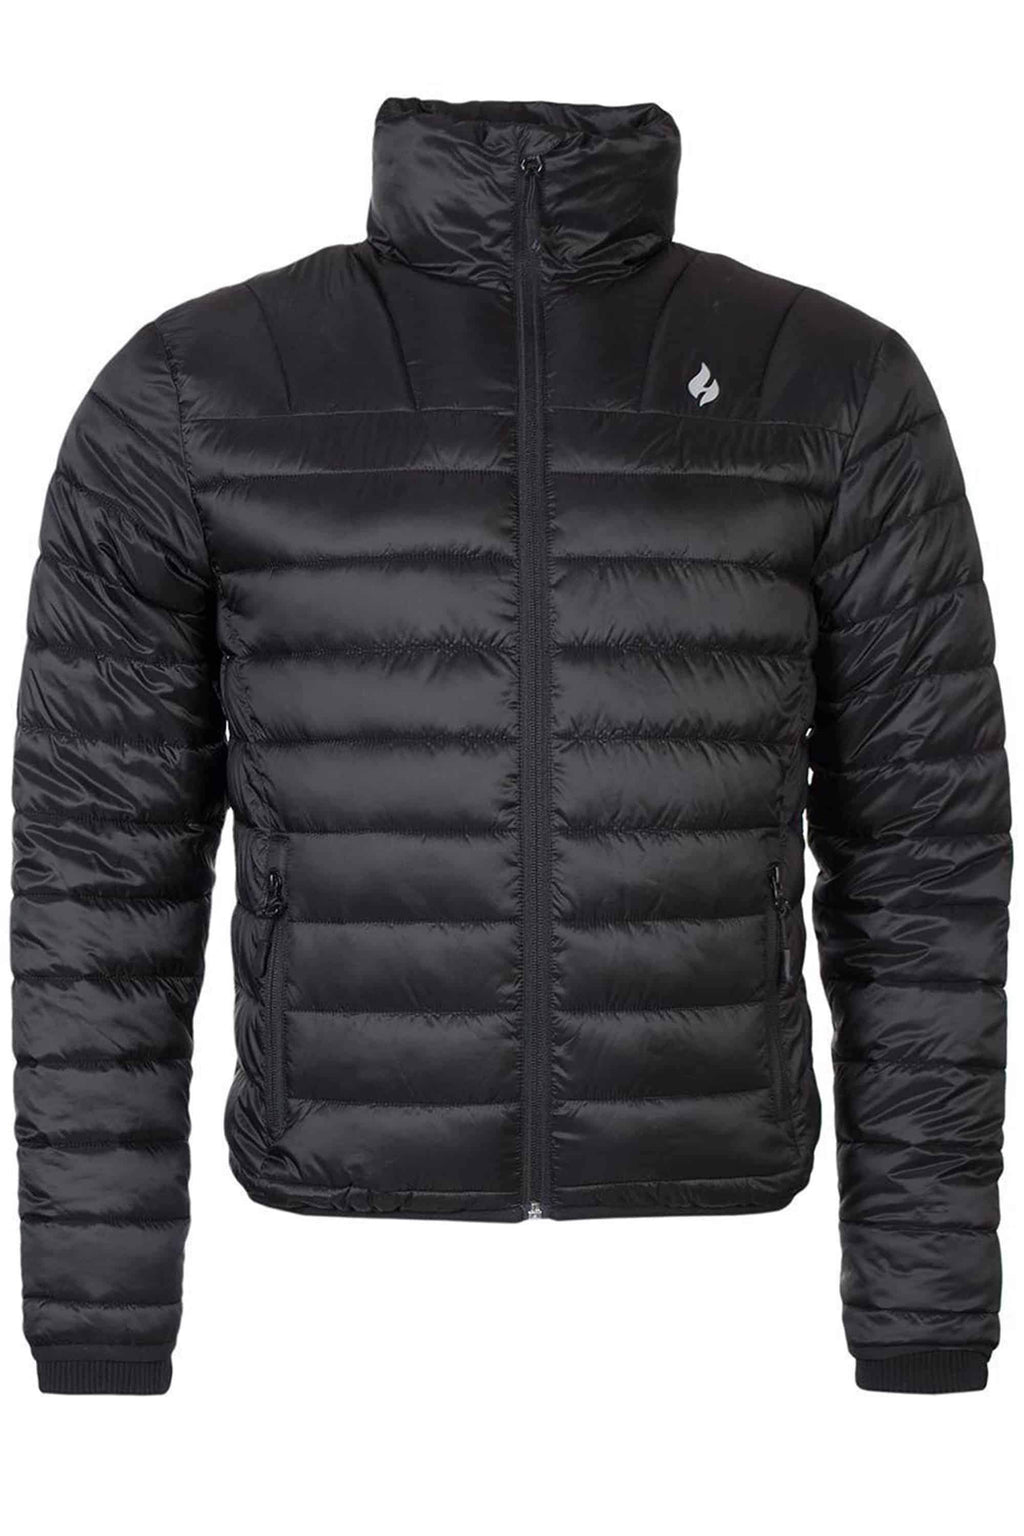 Mens Thermal Waterproof Fleece Lined Puffer Jacket - DadiTude